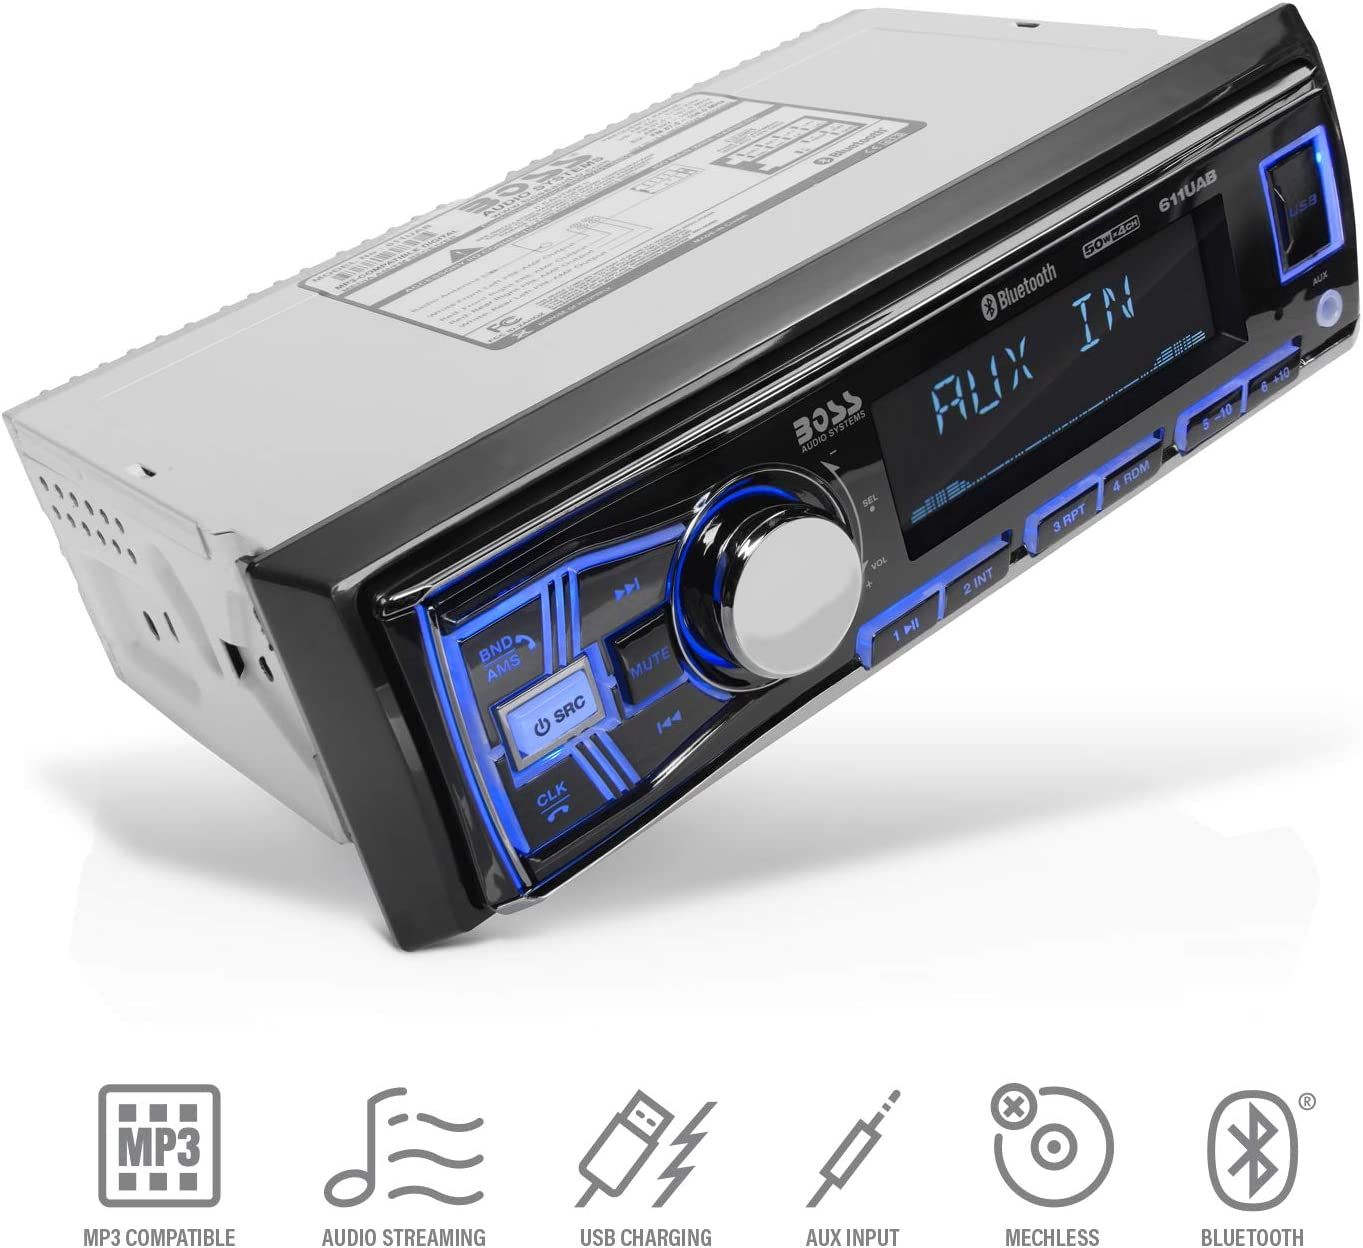 BOSS Audio Systems 611UAB Multimedia Car Stereo - Single Din, Bluetooth Audio and Hands-Free Calling, Built-in Microphone, MP3 Player, No CD/DVD Player, USB Port, AUX Input, AM/FM Radio Receiver